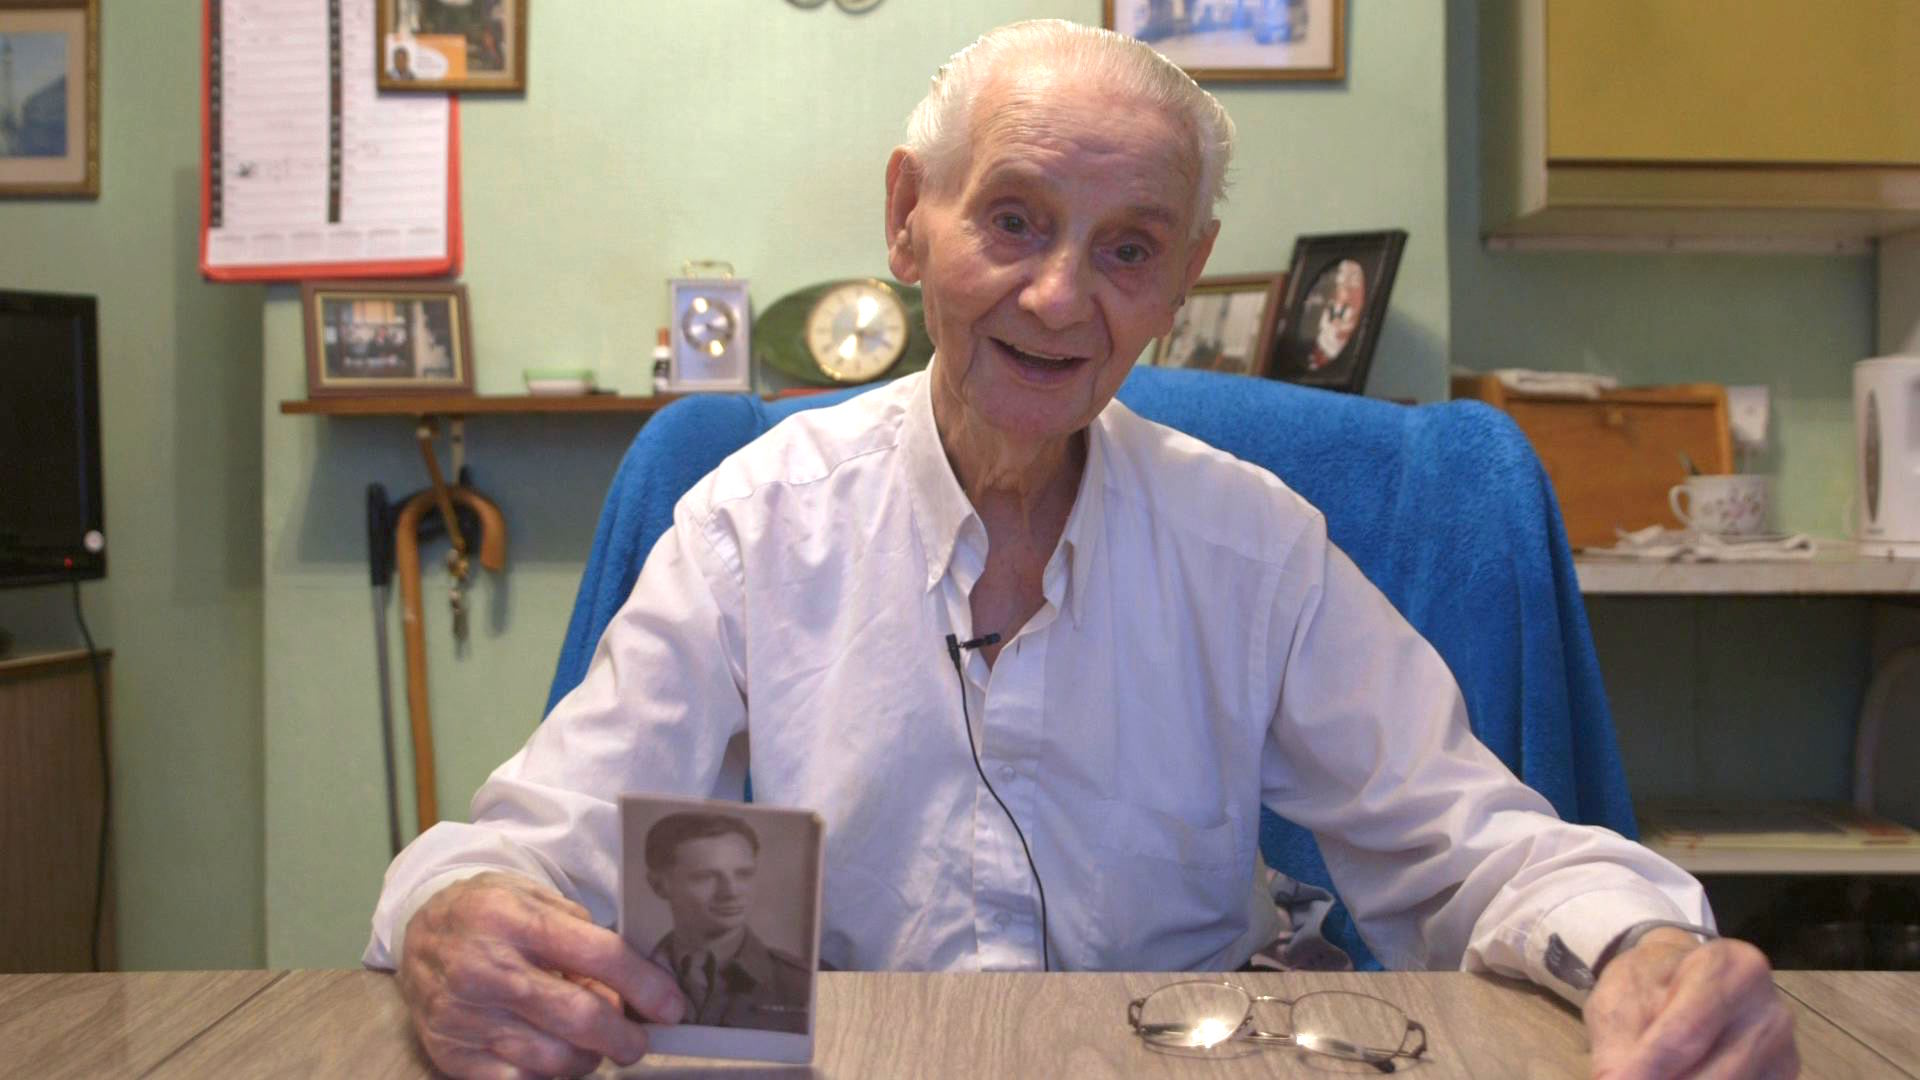 Fred shows us a wartime portrait of himself